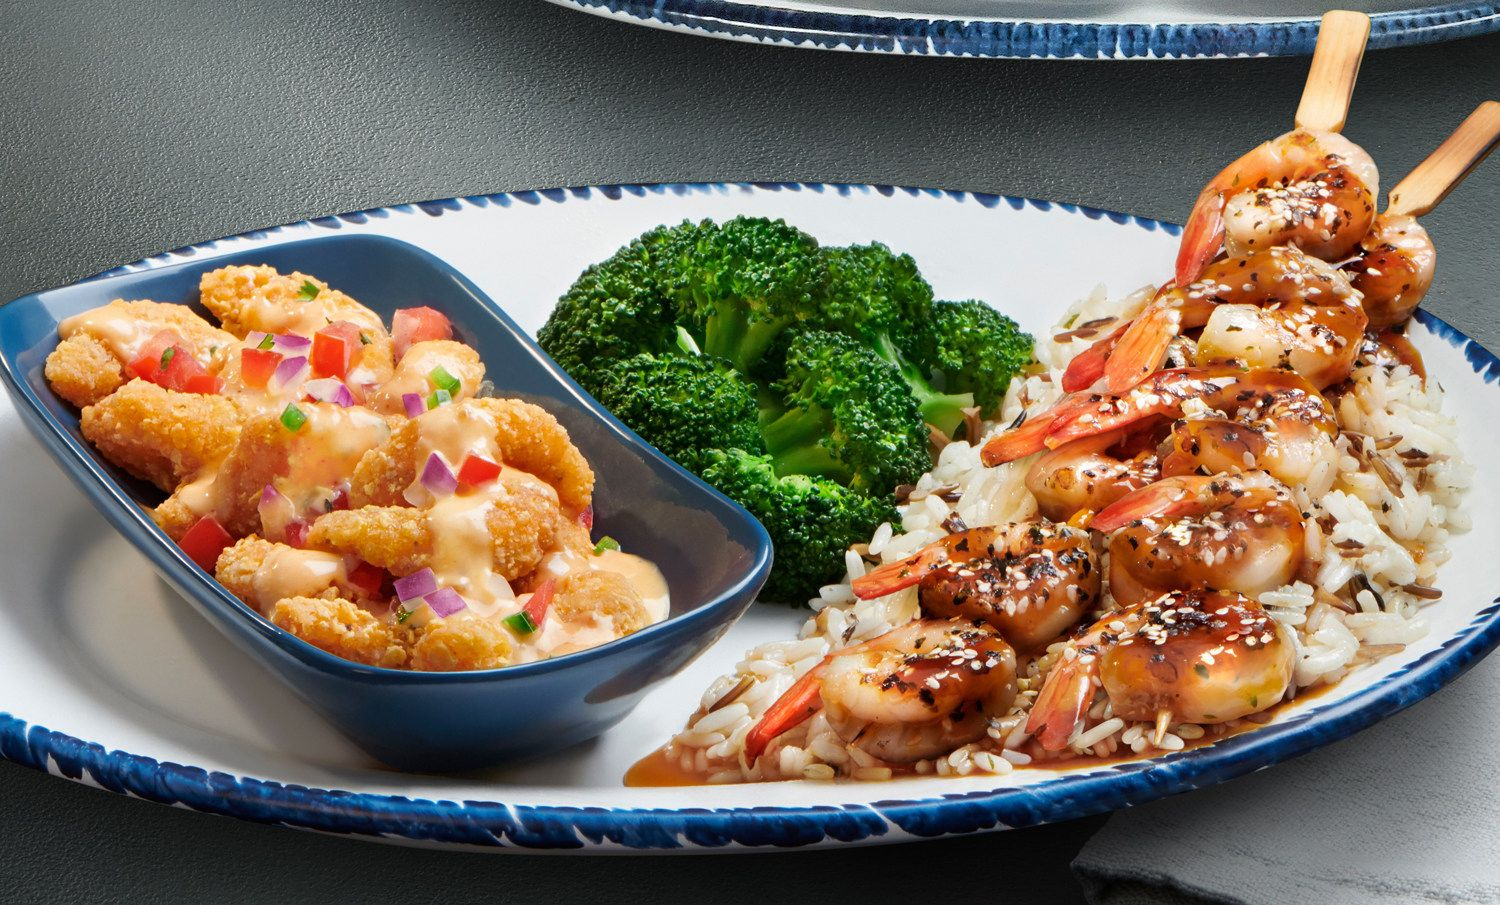 Crunchy Fiesta Shrimp and Sesame-Ginger Grilled Shrimp